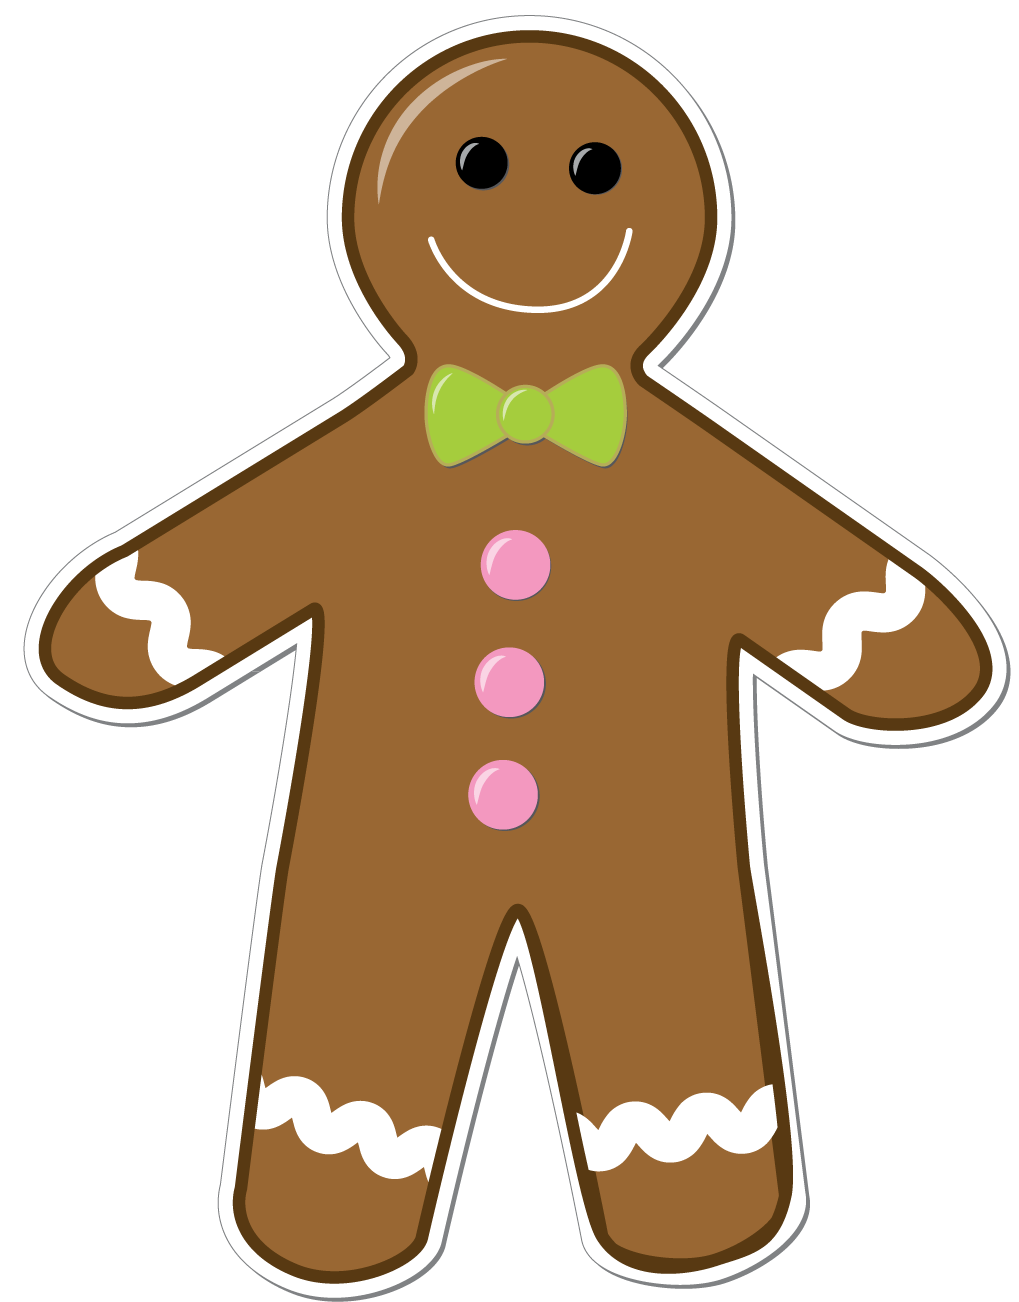 Gingerbread clipart #15